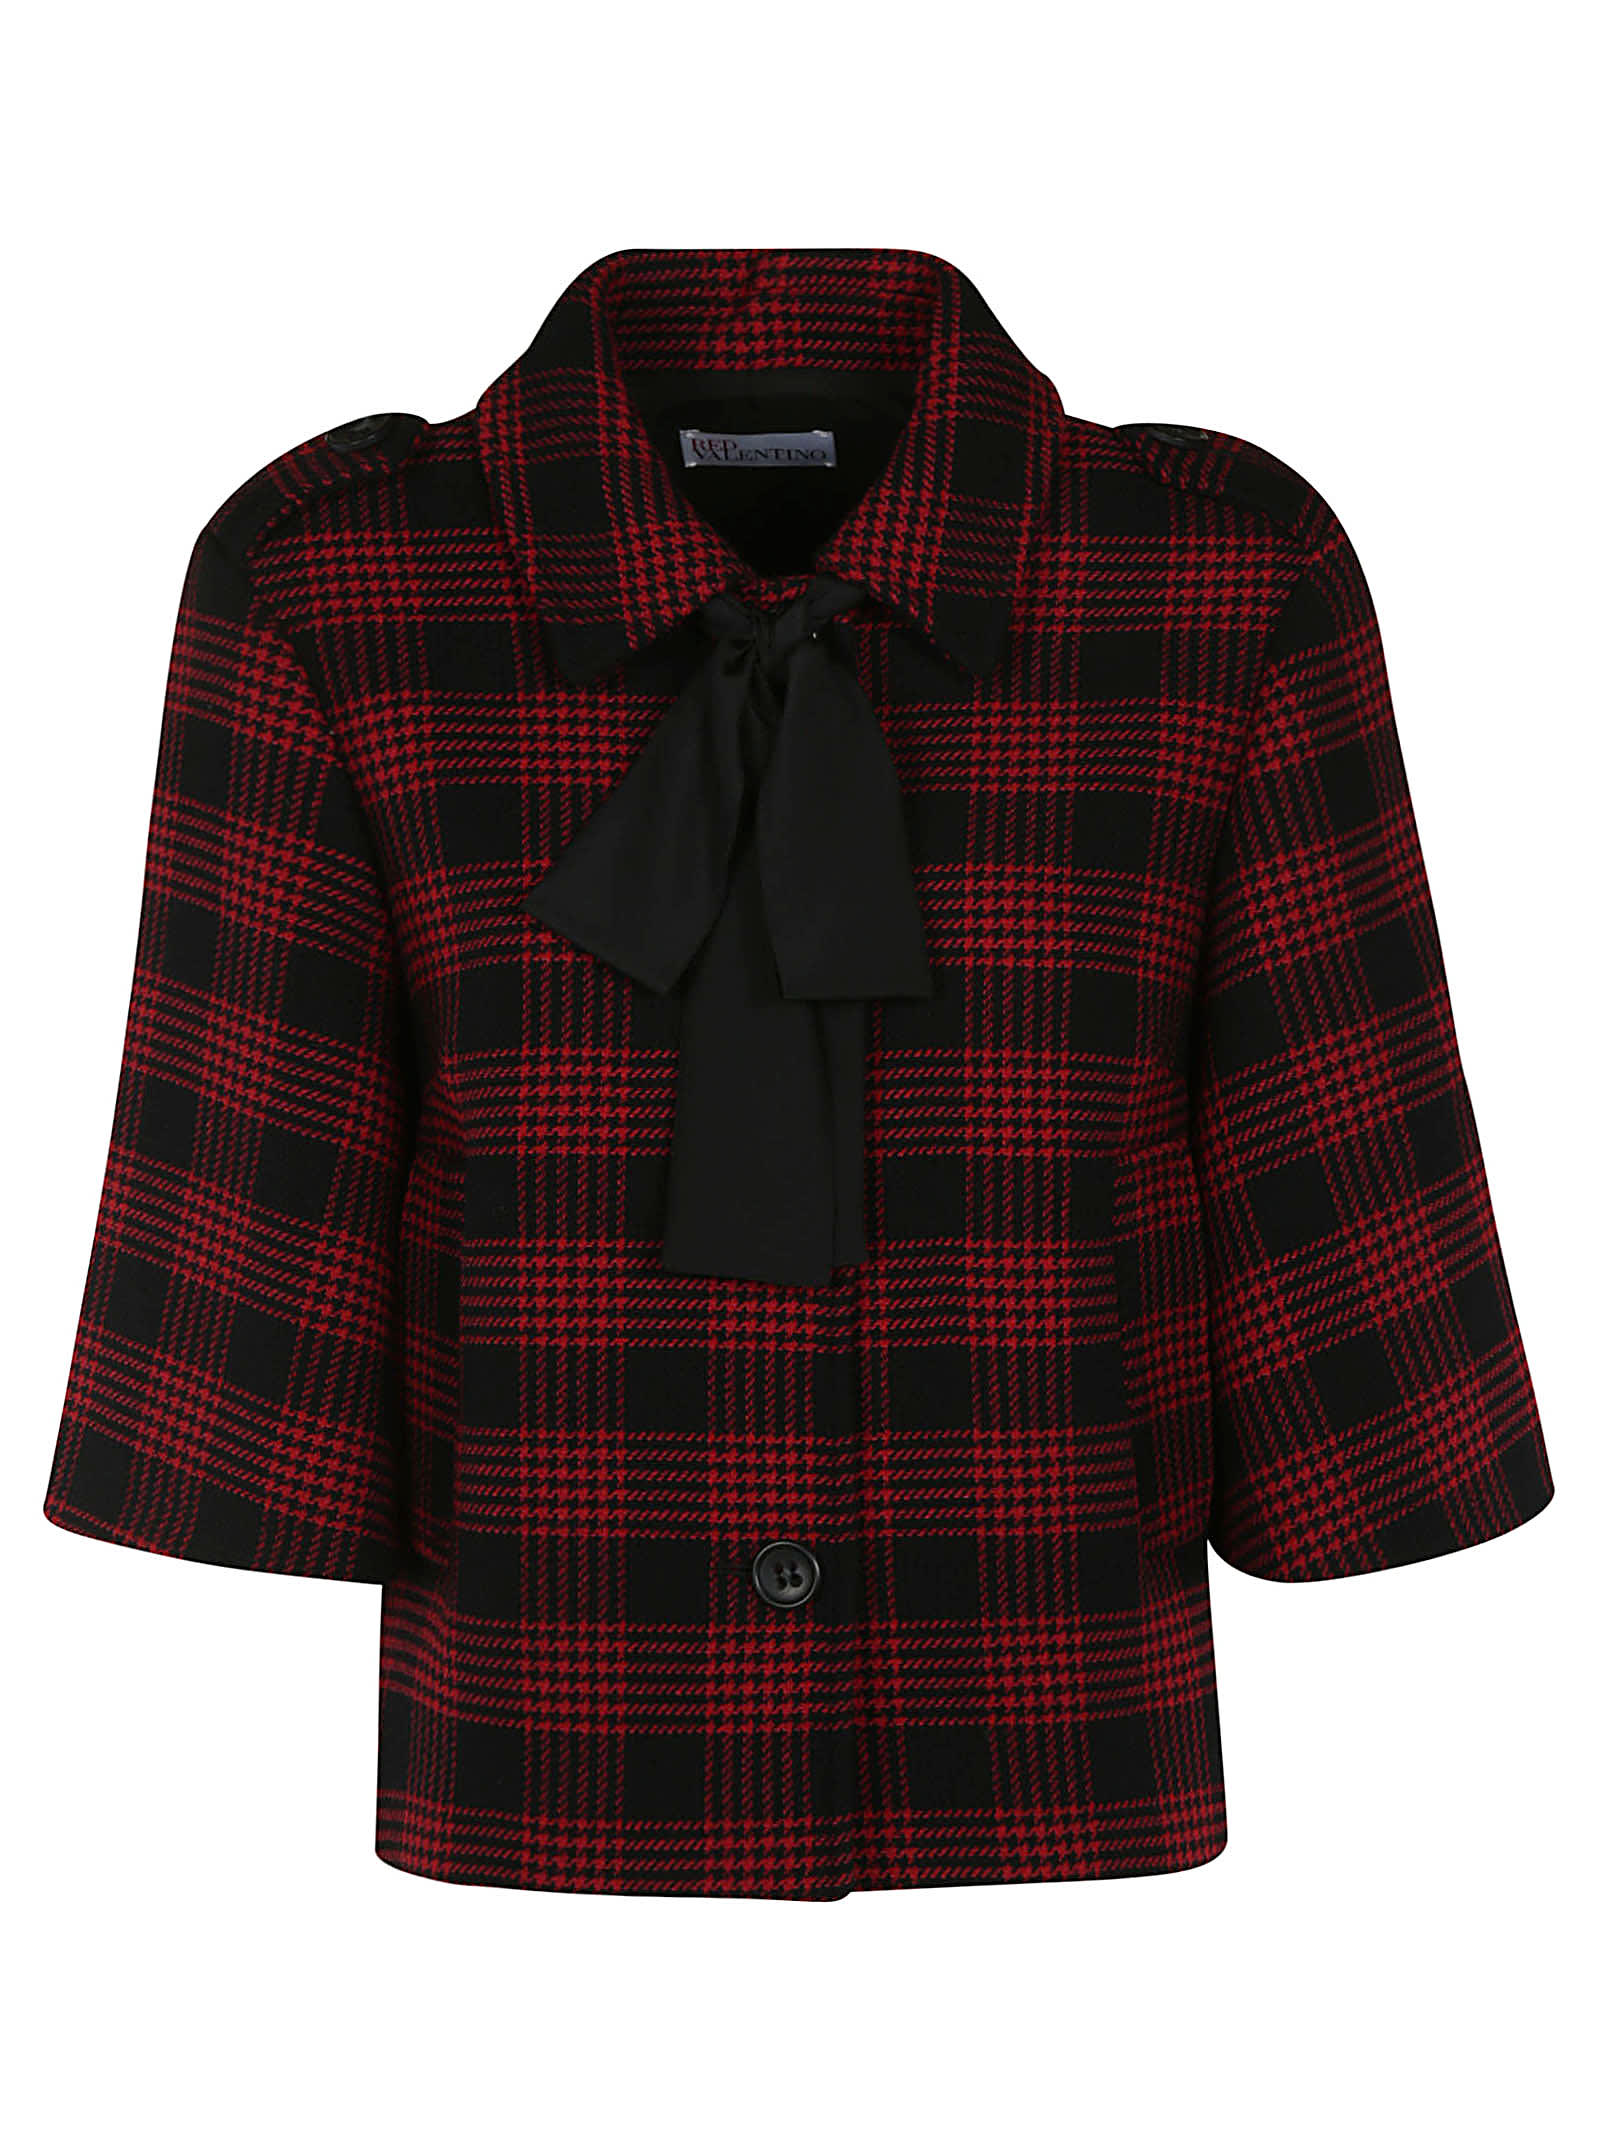 RED Valentino Checked Jacket